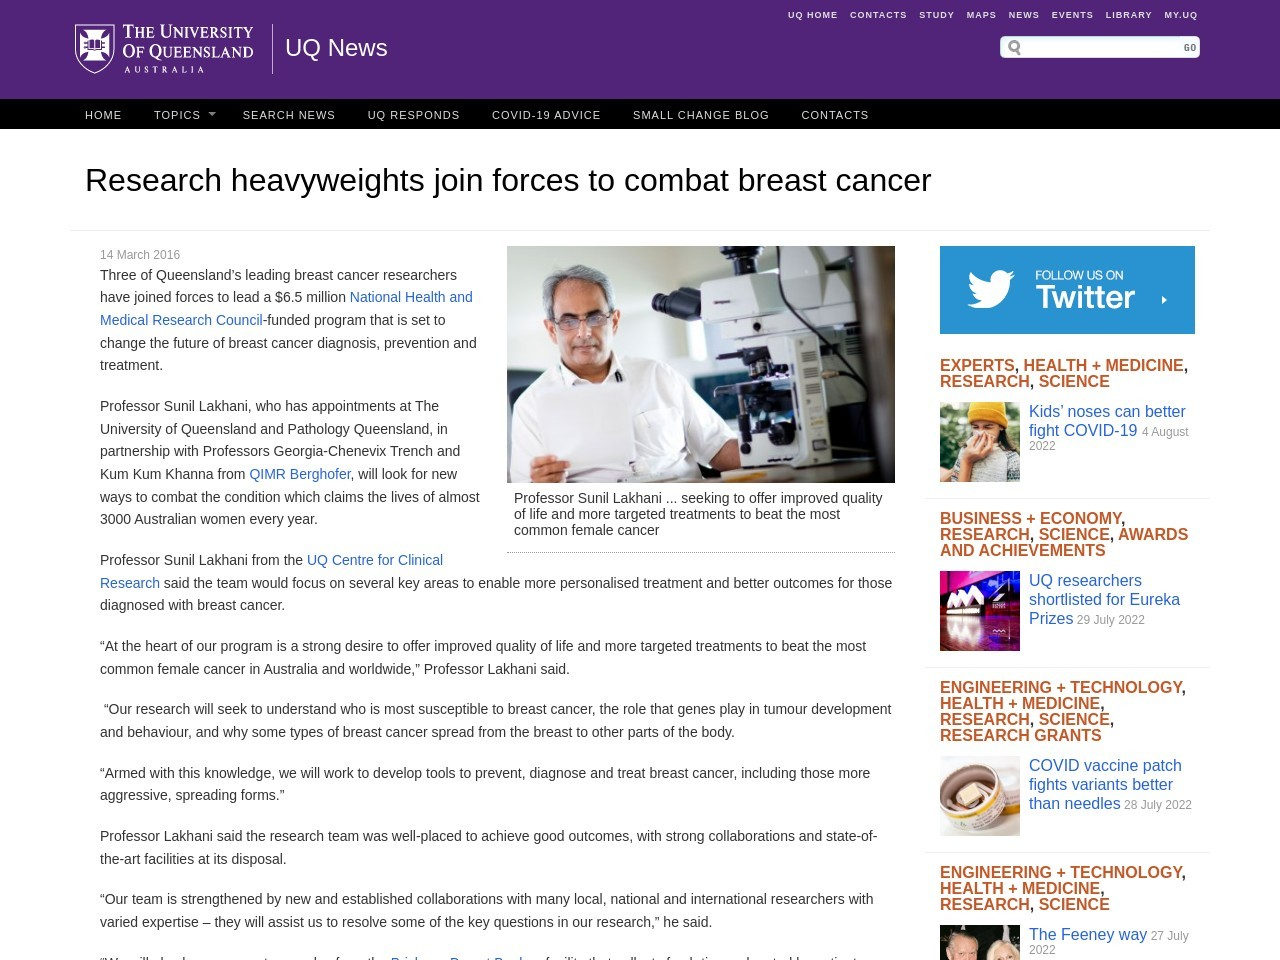 Research heavyweights join forces to combat breast cancer